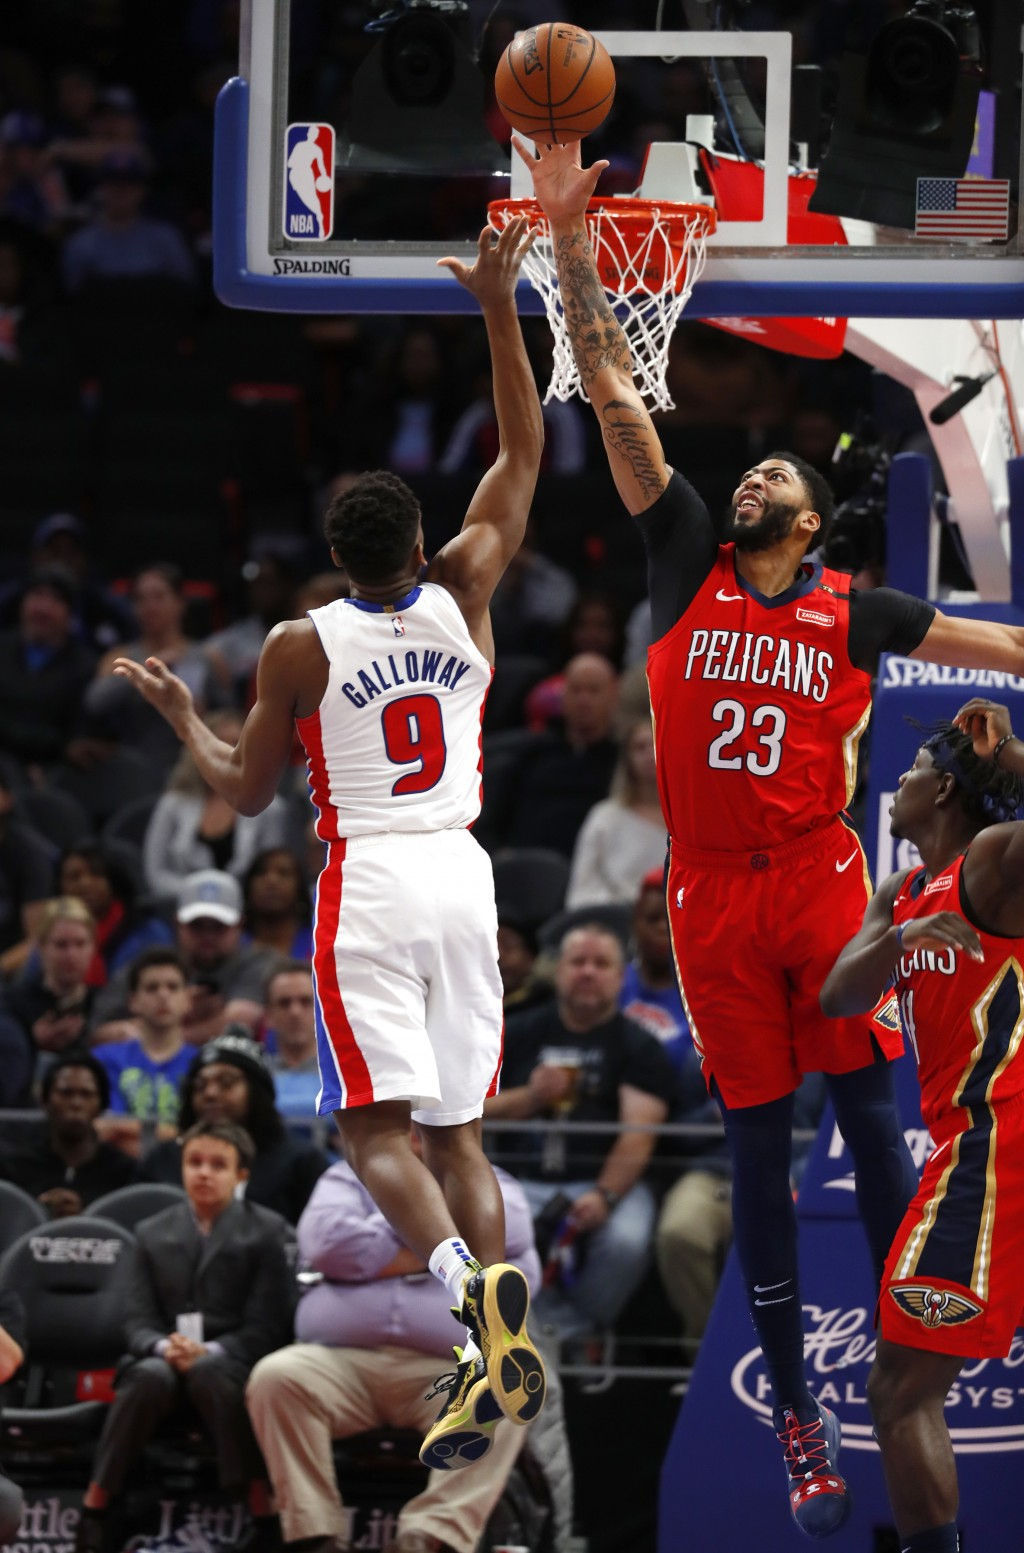 New Orleans Pelicans forward Anthony Davis (23) blocks a shot byDetroit Pistons guard Langston Galloway (9) in the second half of an NBA basketball ga...